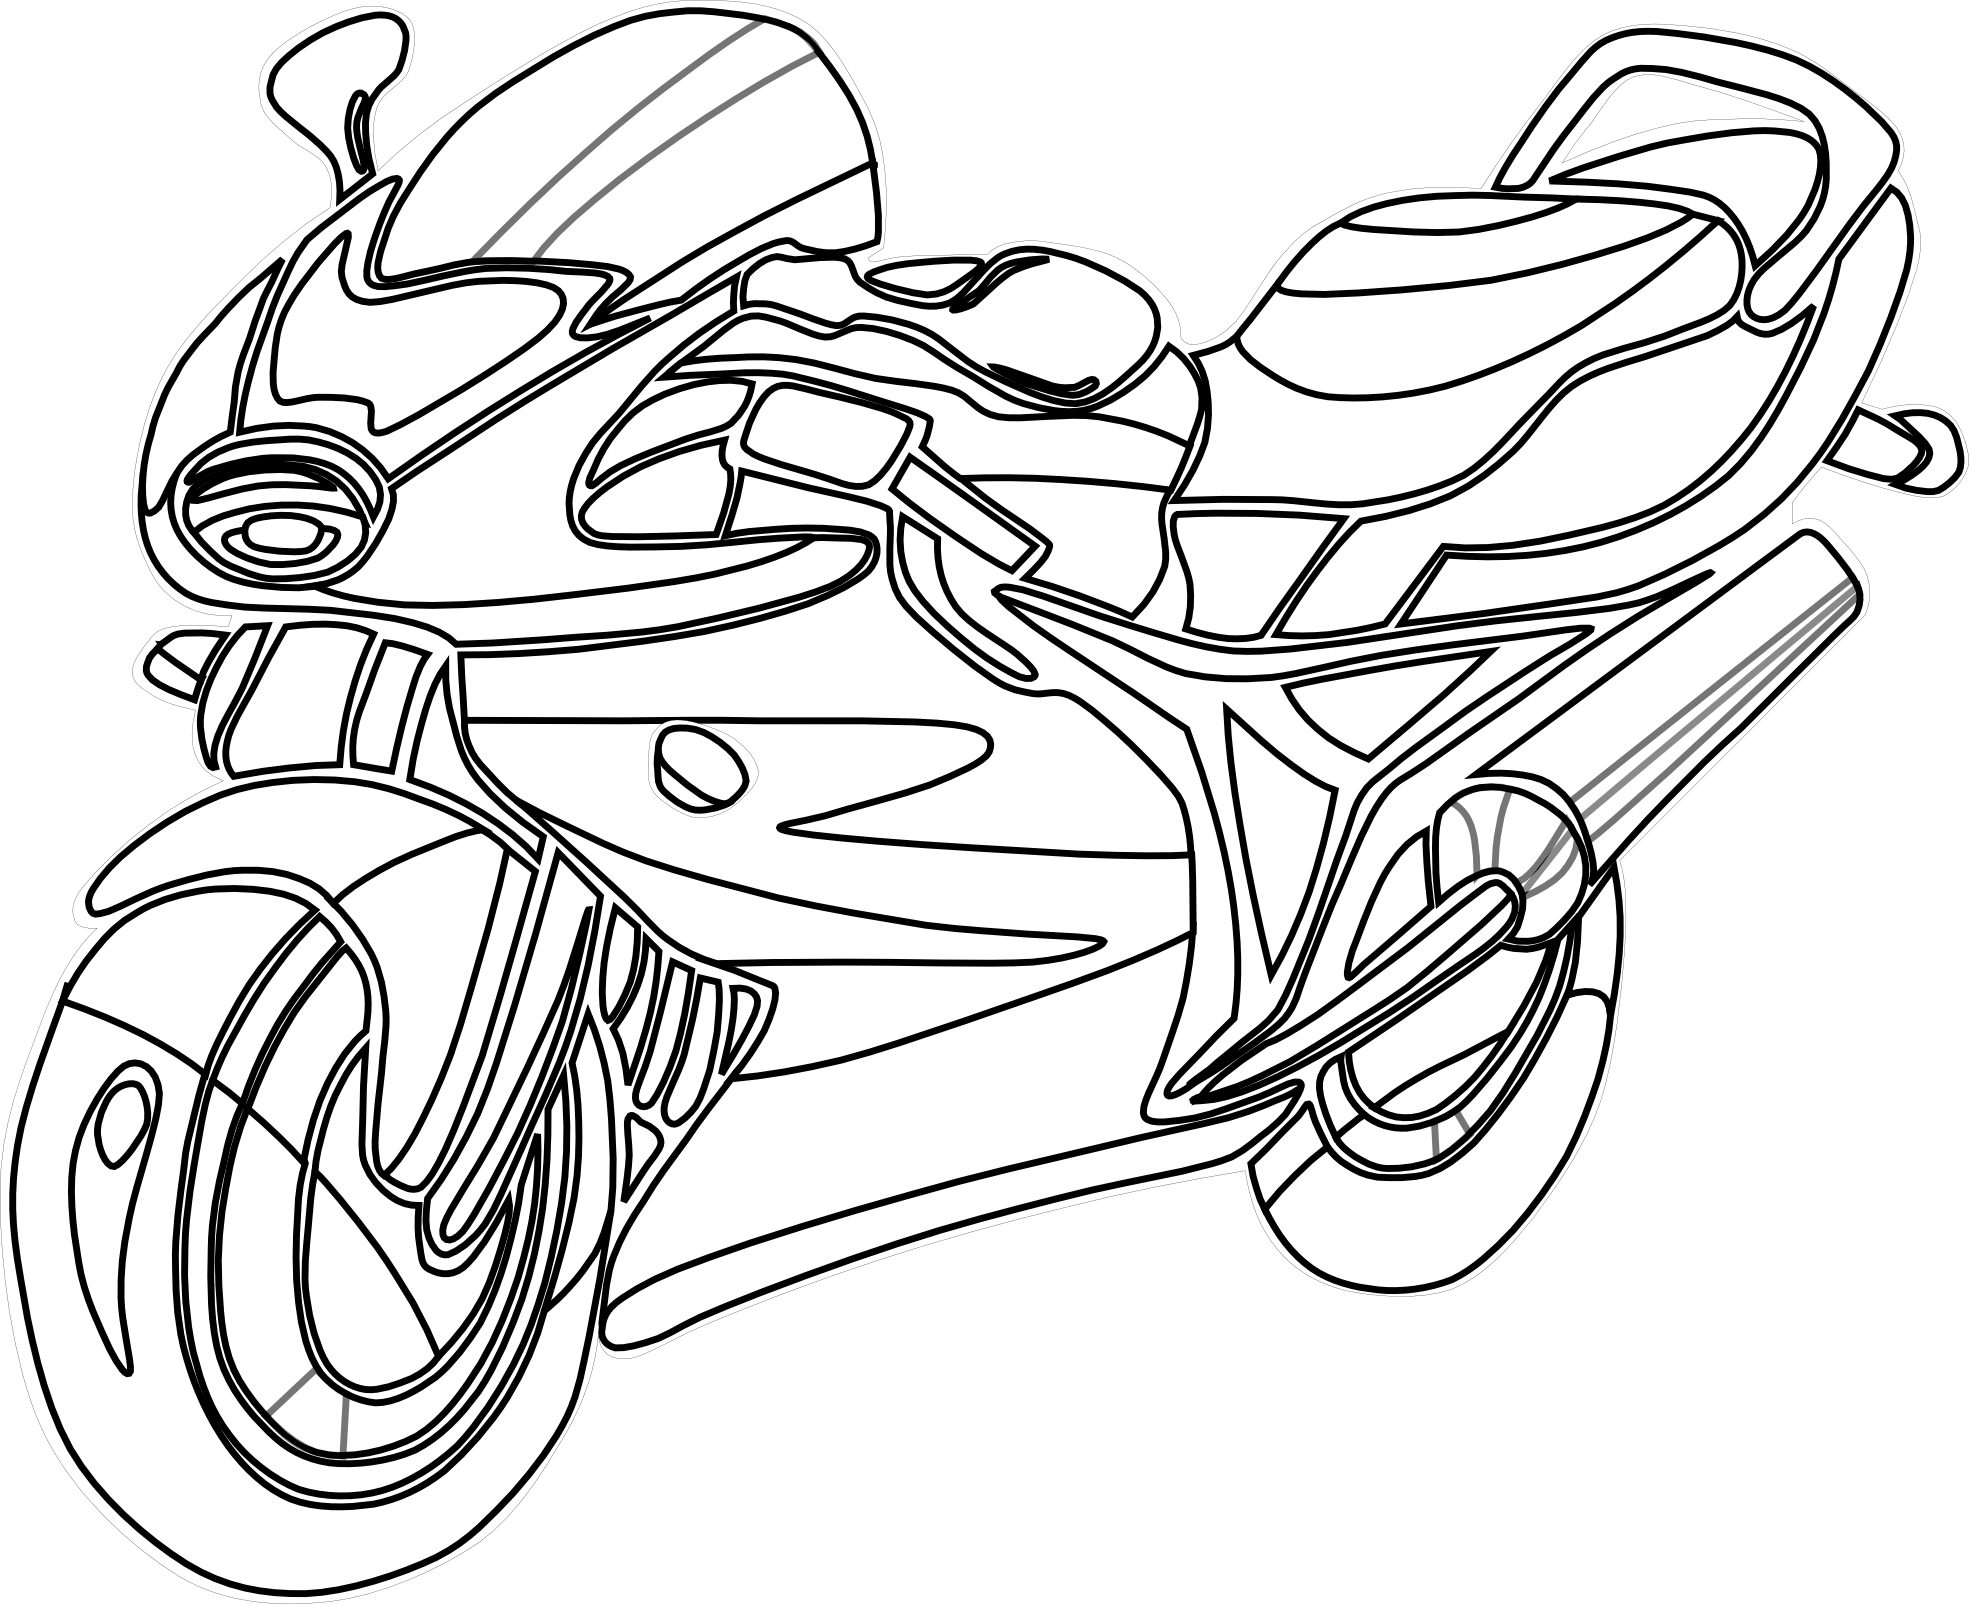 1969x1604 Free Printable Motorcycle Coloring Pages For Kids